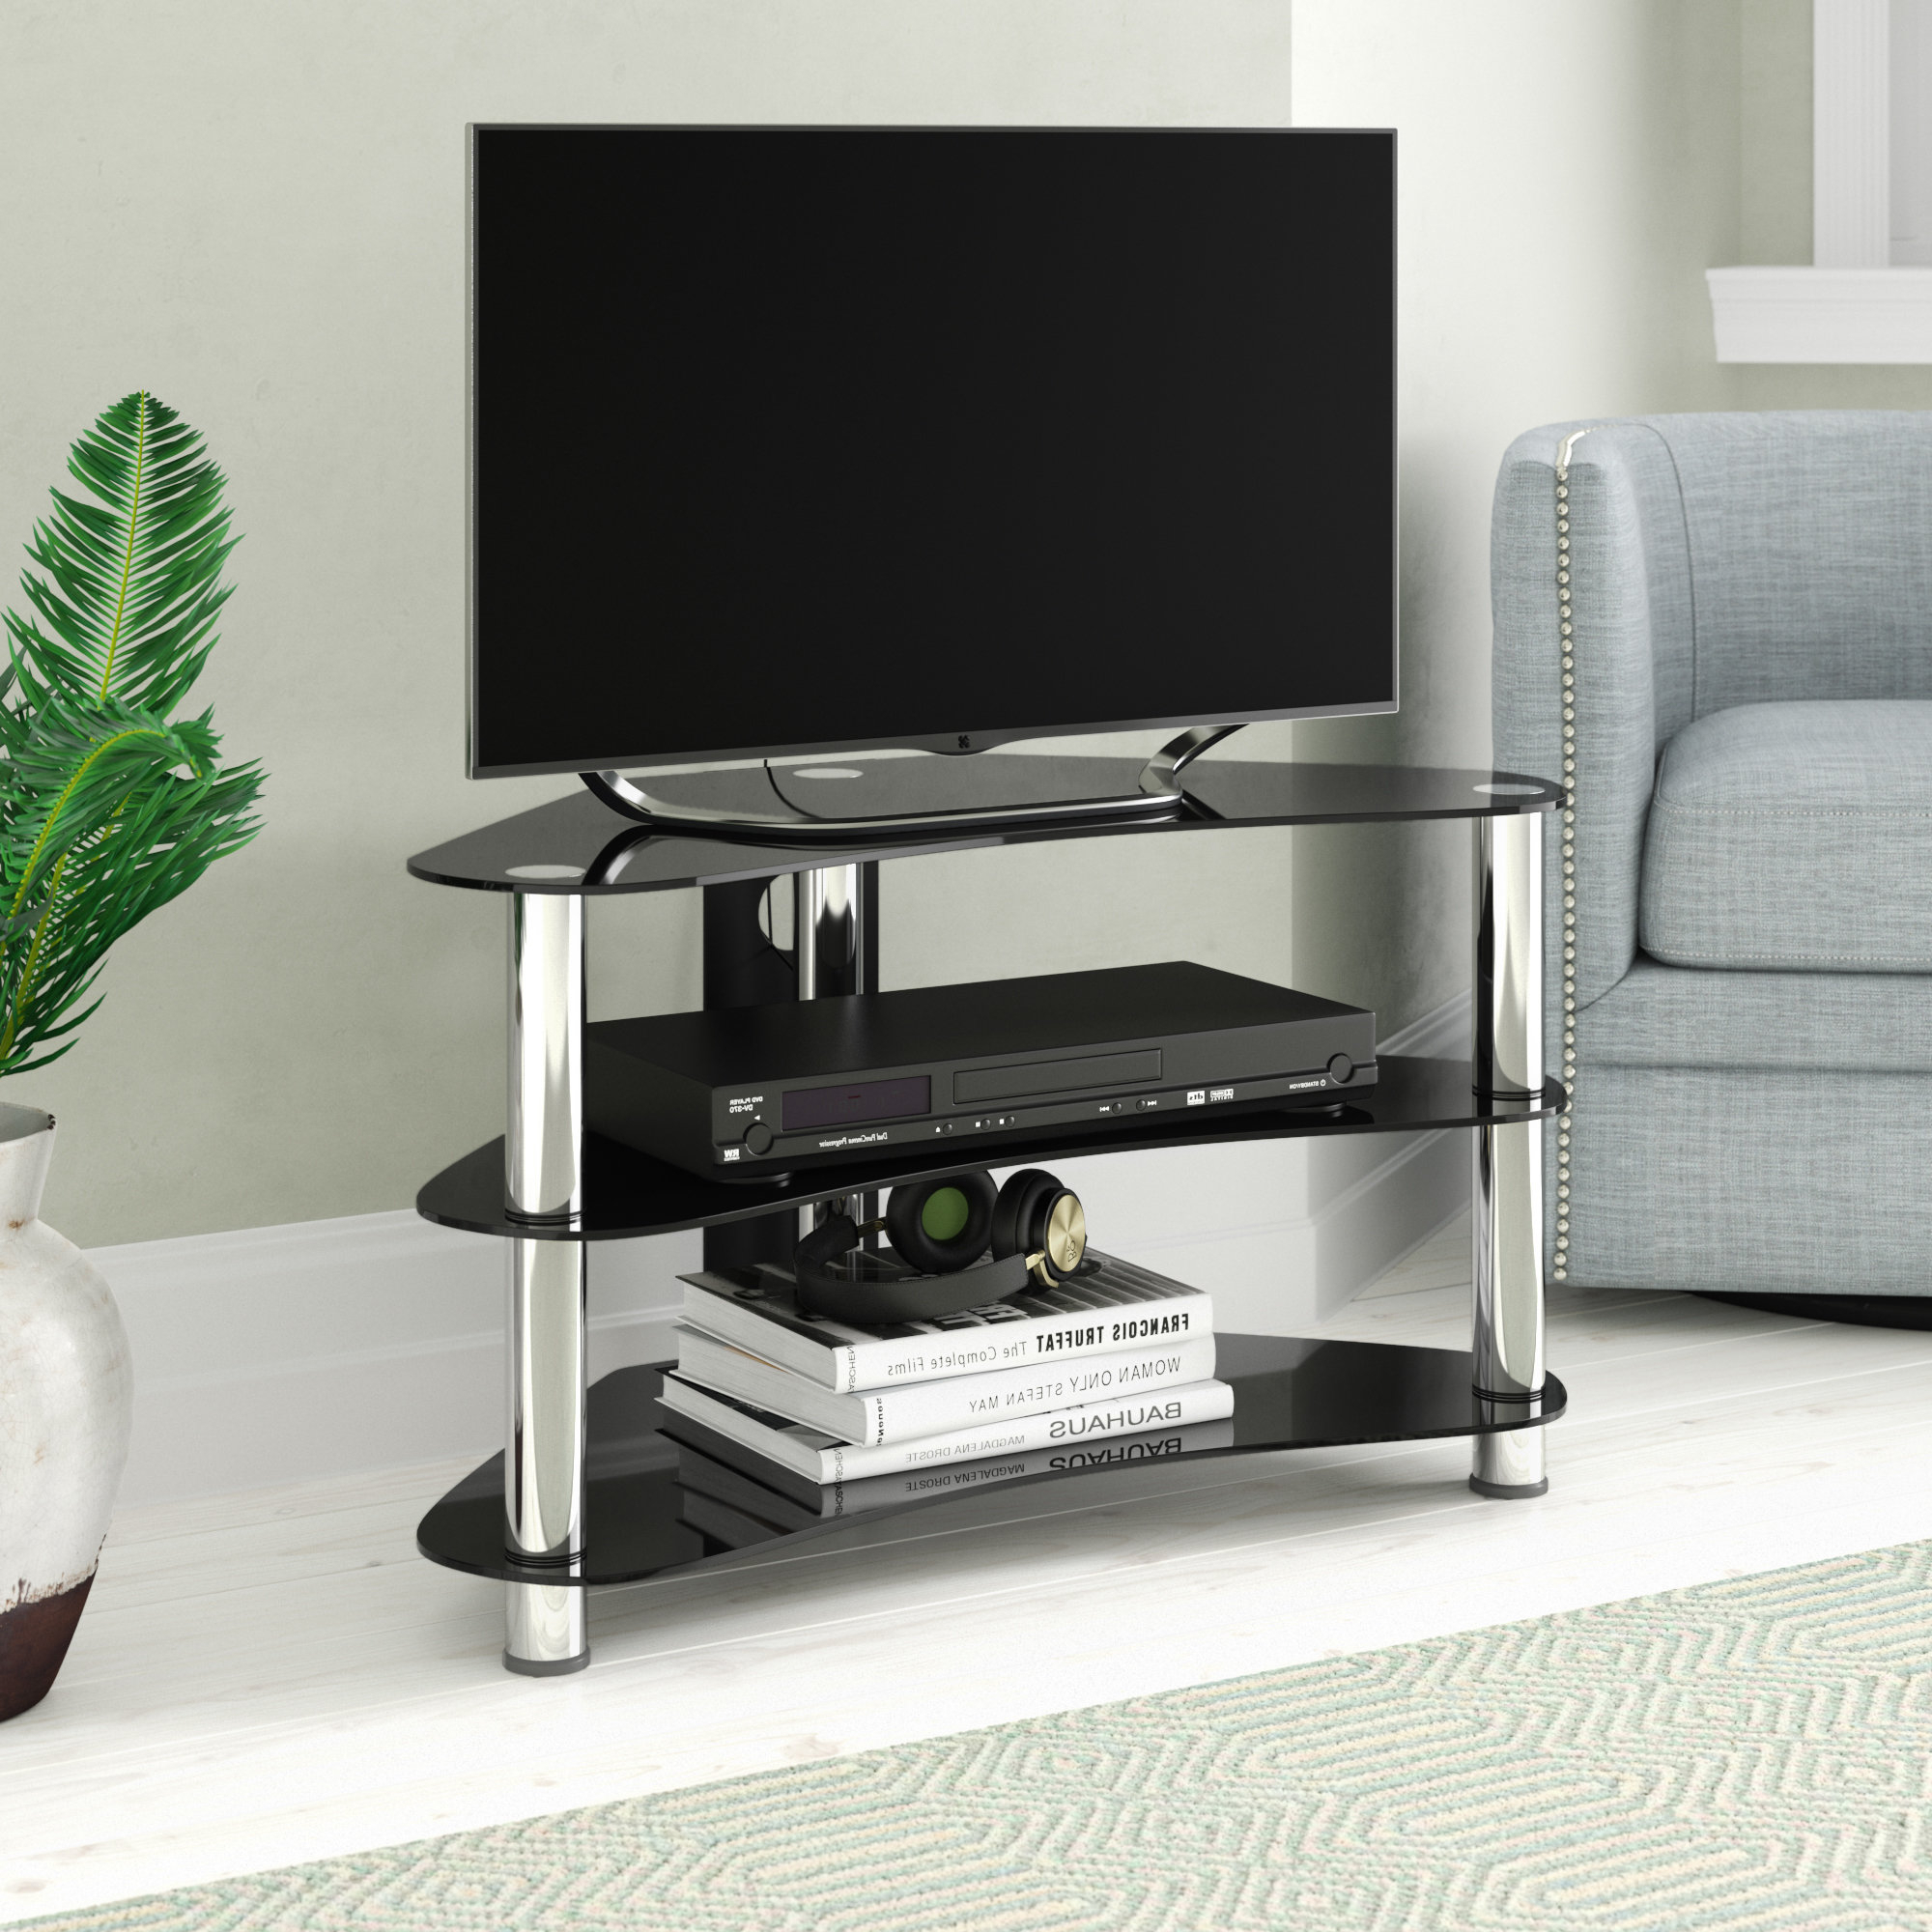 Widely Used Metal Frame Tv Stands & Entertainment Units You'll Love (View 5 of 20)